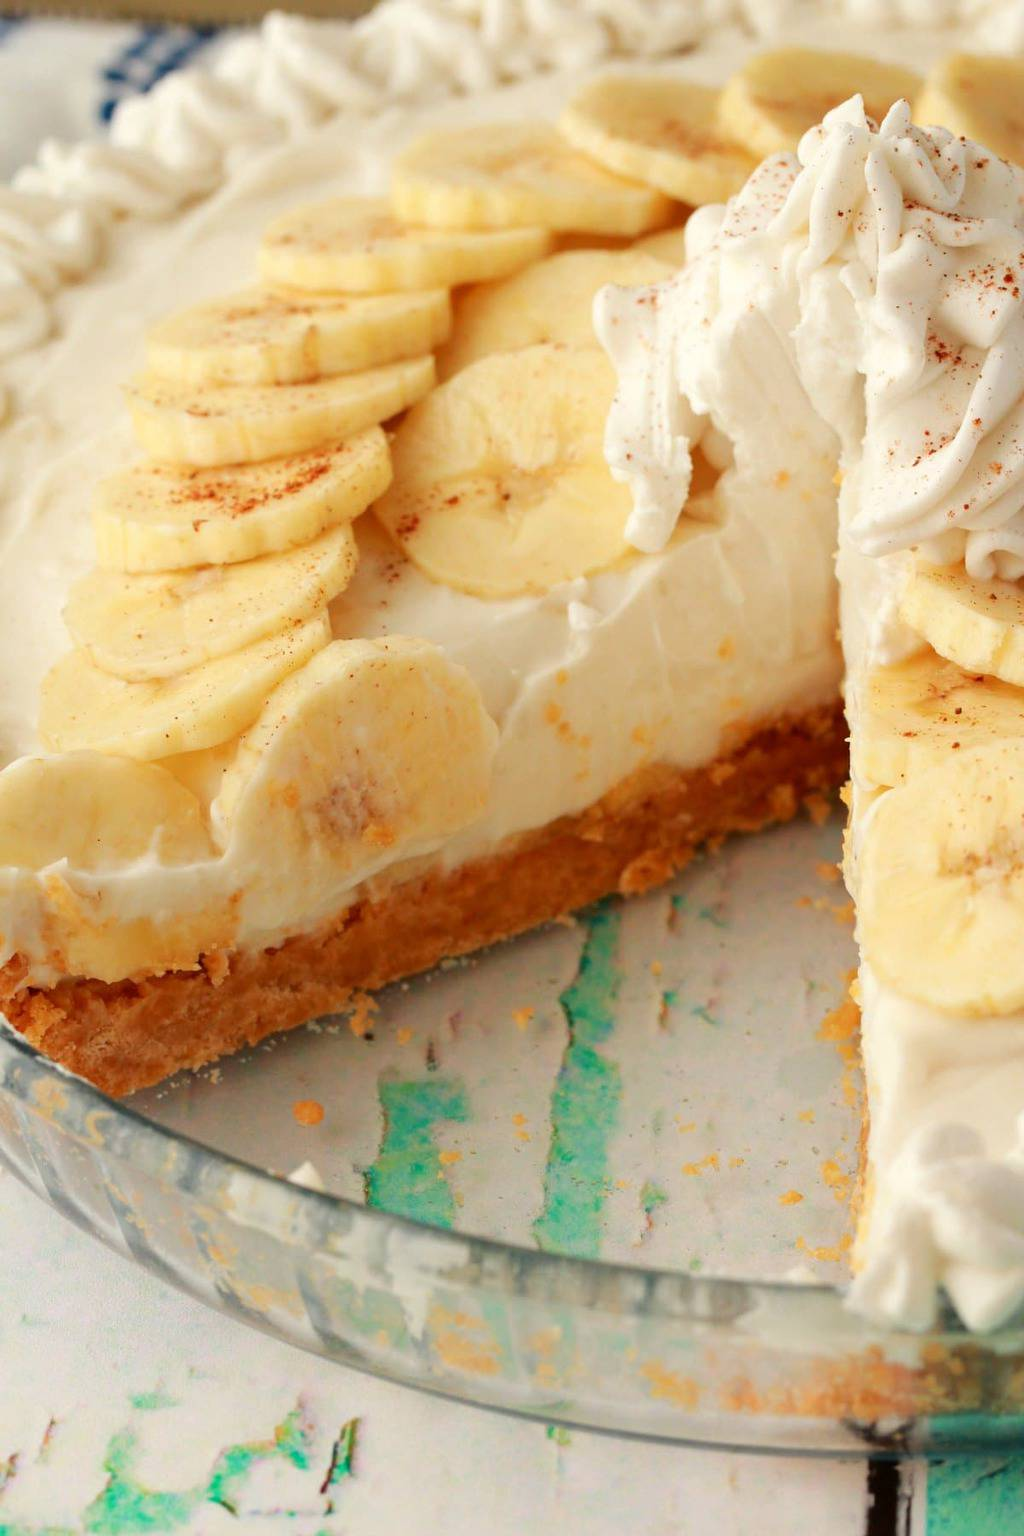 Vegan Banana Cream Pie! A deliciously rich and creamy pie set on top of a golden oreo crust, with sliced banana, vanilla cream pudding and vegan whipped cream! #vegan #lovingitvegan #dessert #pie #dairyfree #bananacreampie